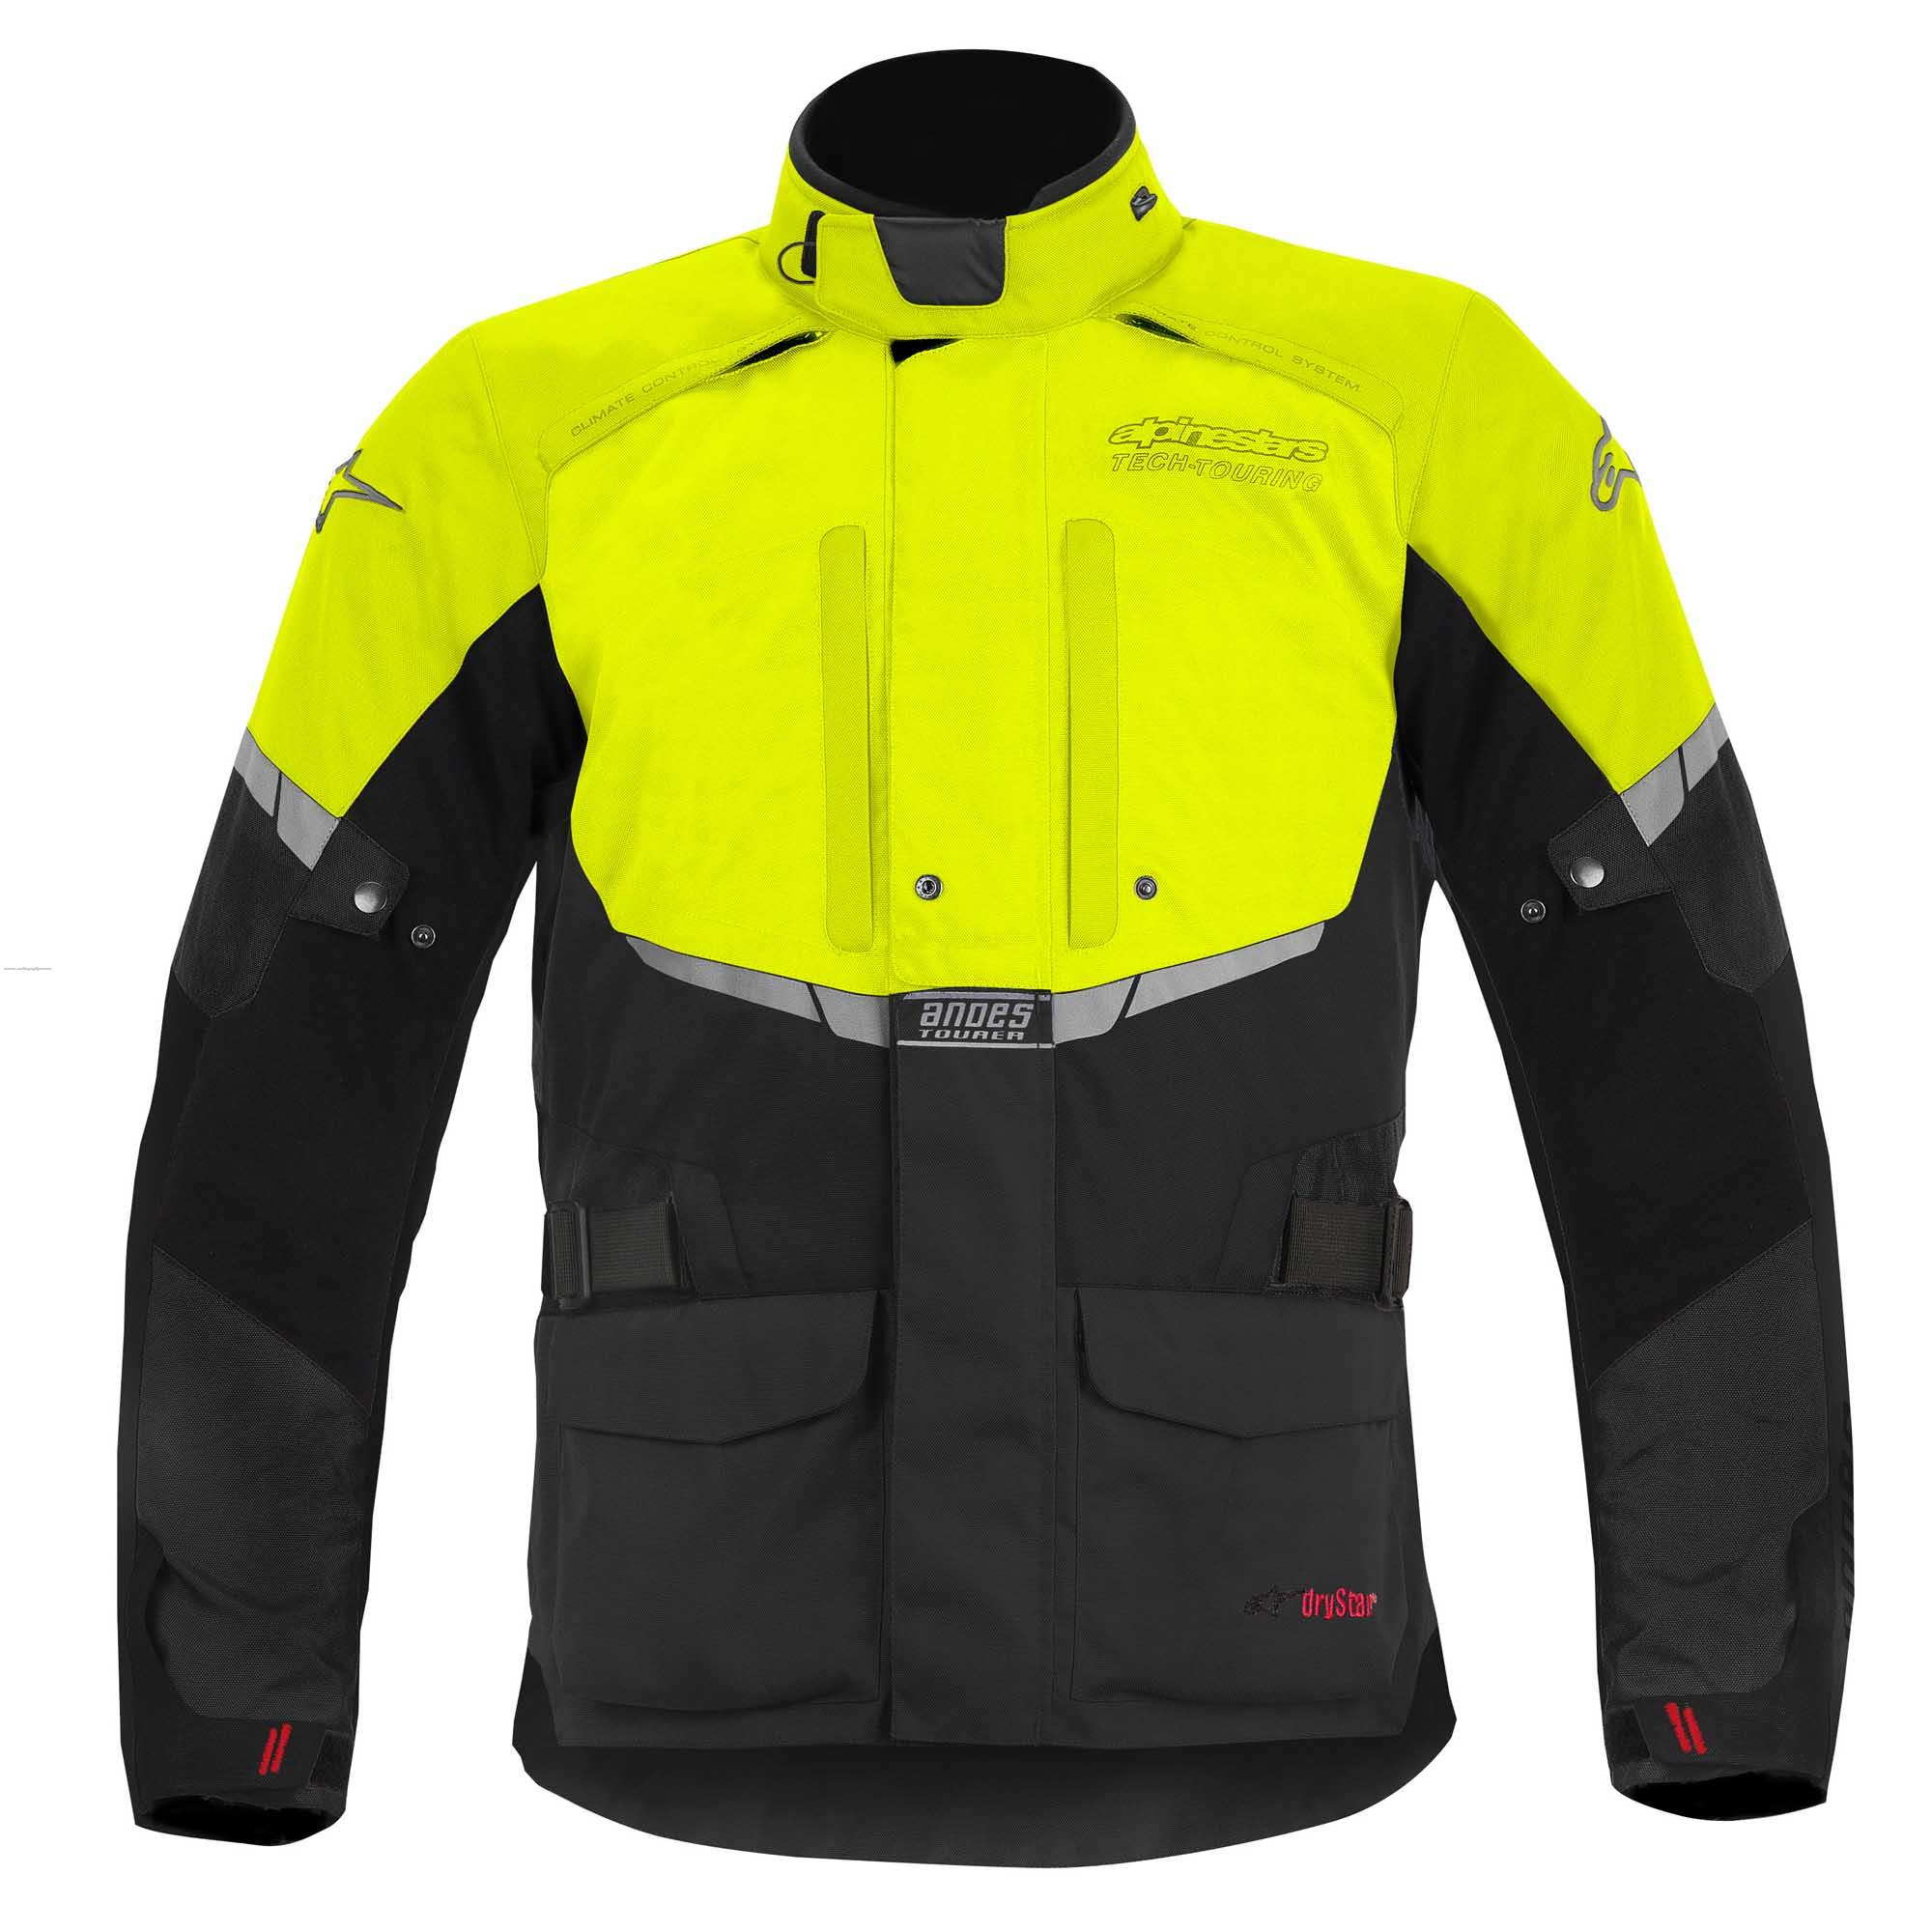 CHAMARRA TEXTIL DRYSTAR ANDES NGO/AMA FLUO L